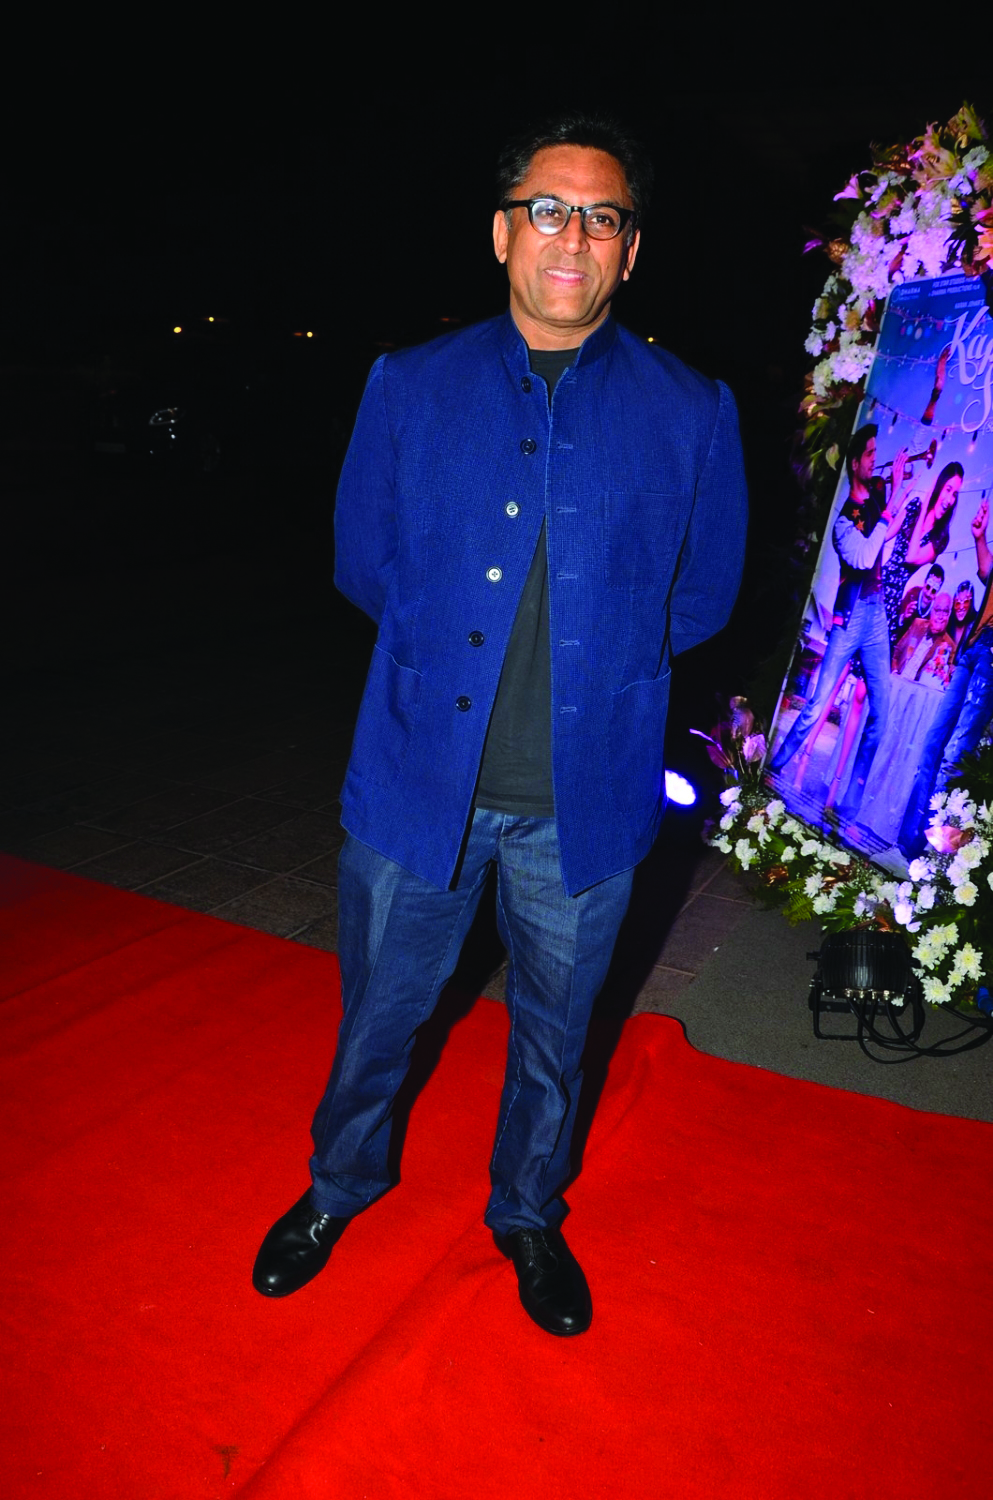 Mumbai: Filmmaker Ram Madhvani during the success party of film Kapoor & Sons in Mumbai on April 3, 2016. (Photo: IANS)